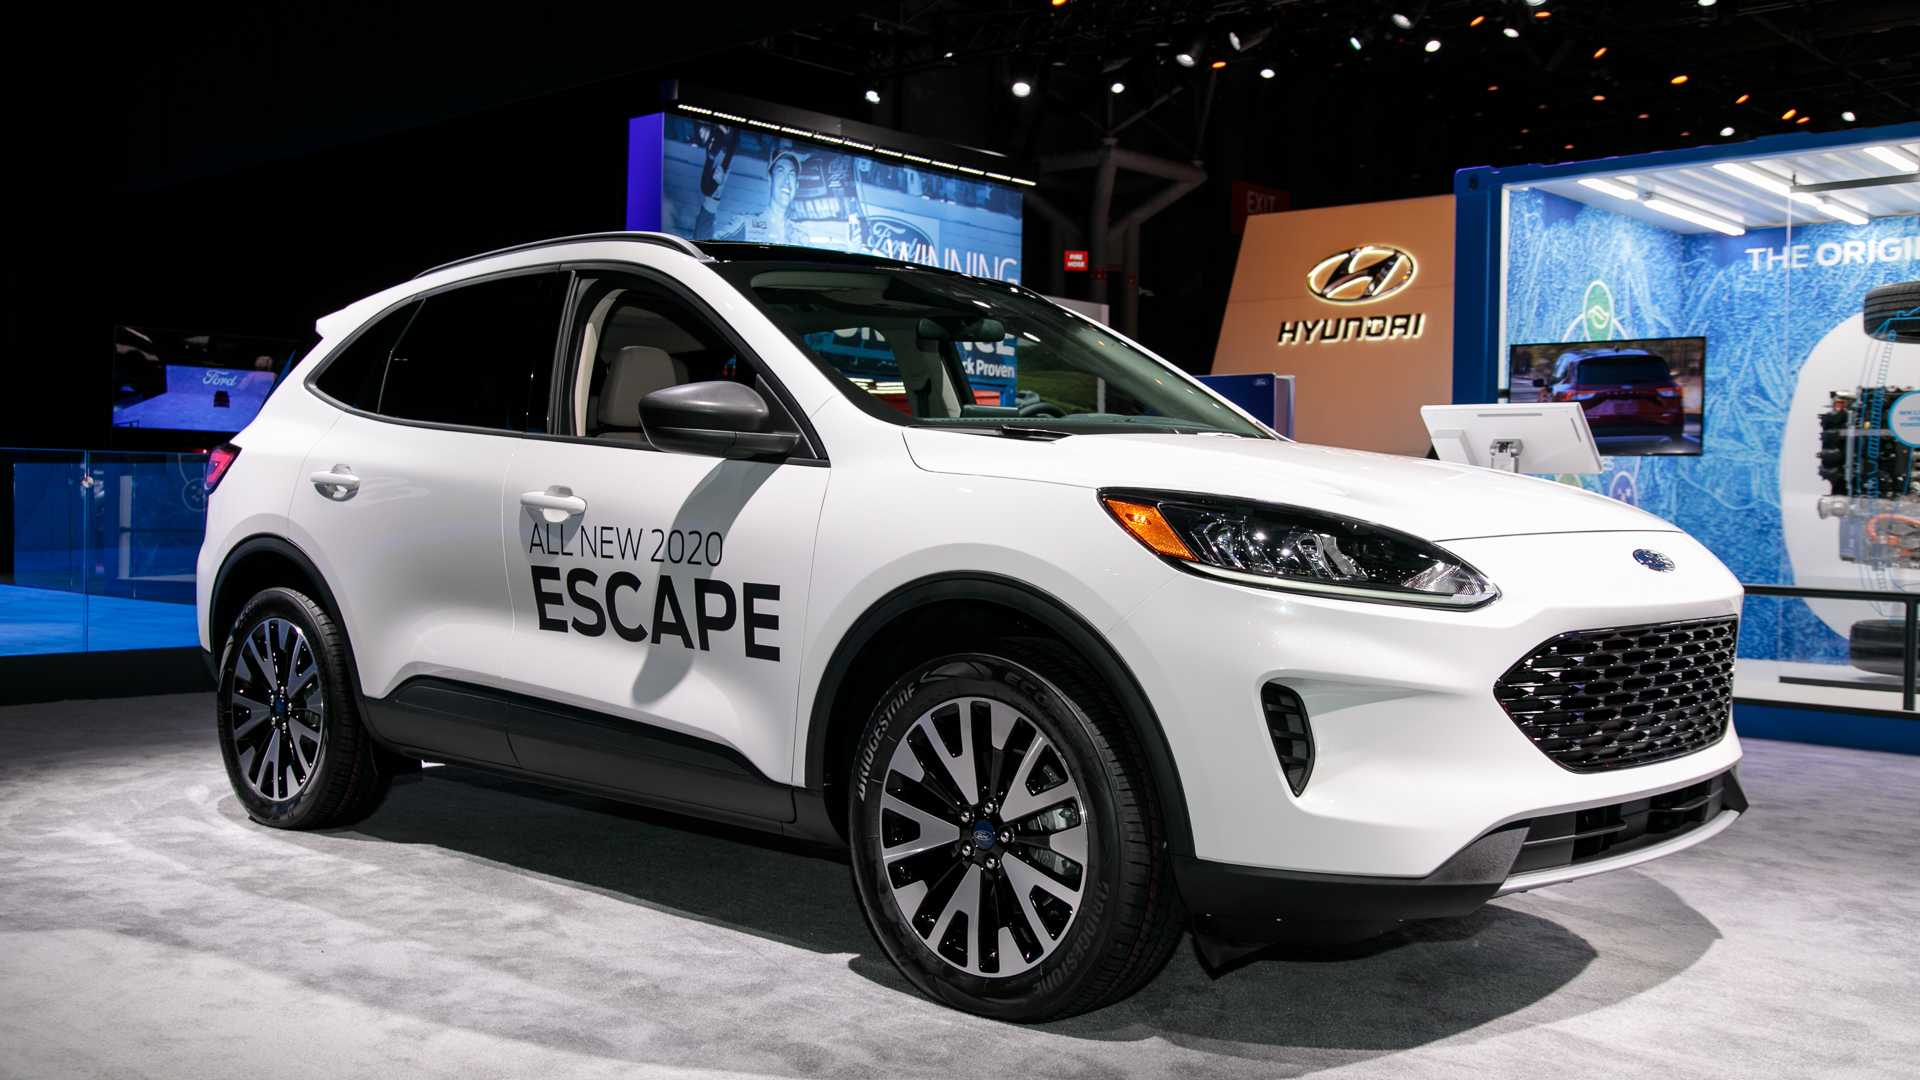 2021 Ford Escape Models And All Prices >> 2020 Ford Escape Debuts With Whole New Look Two Hybrid Choices